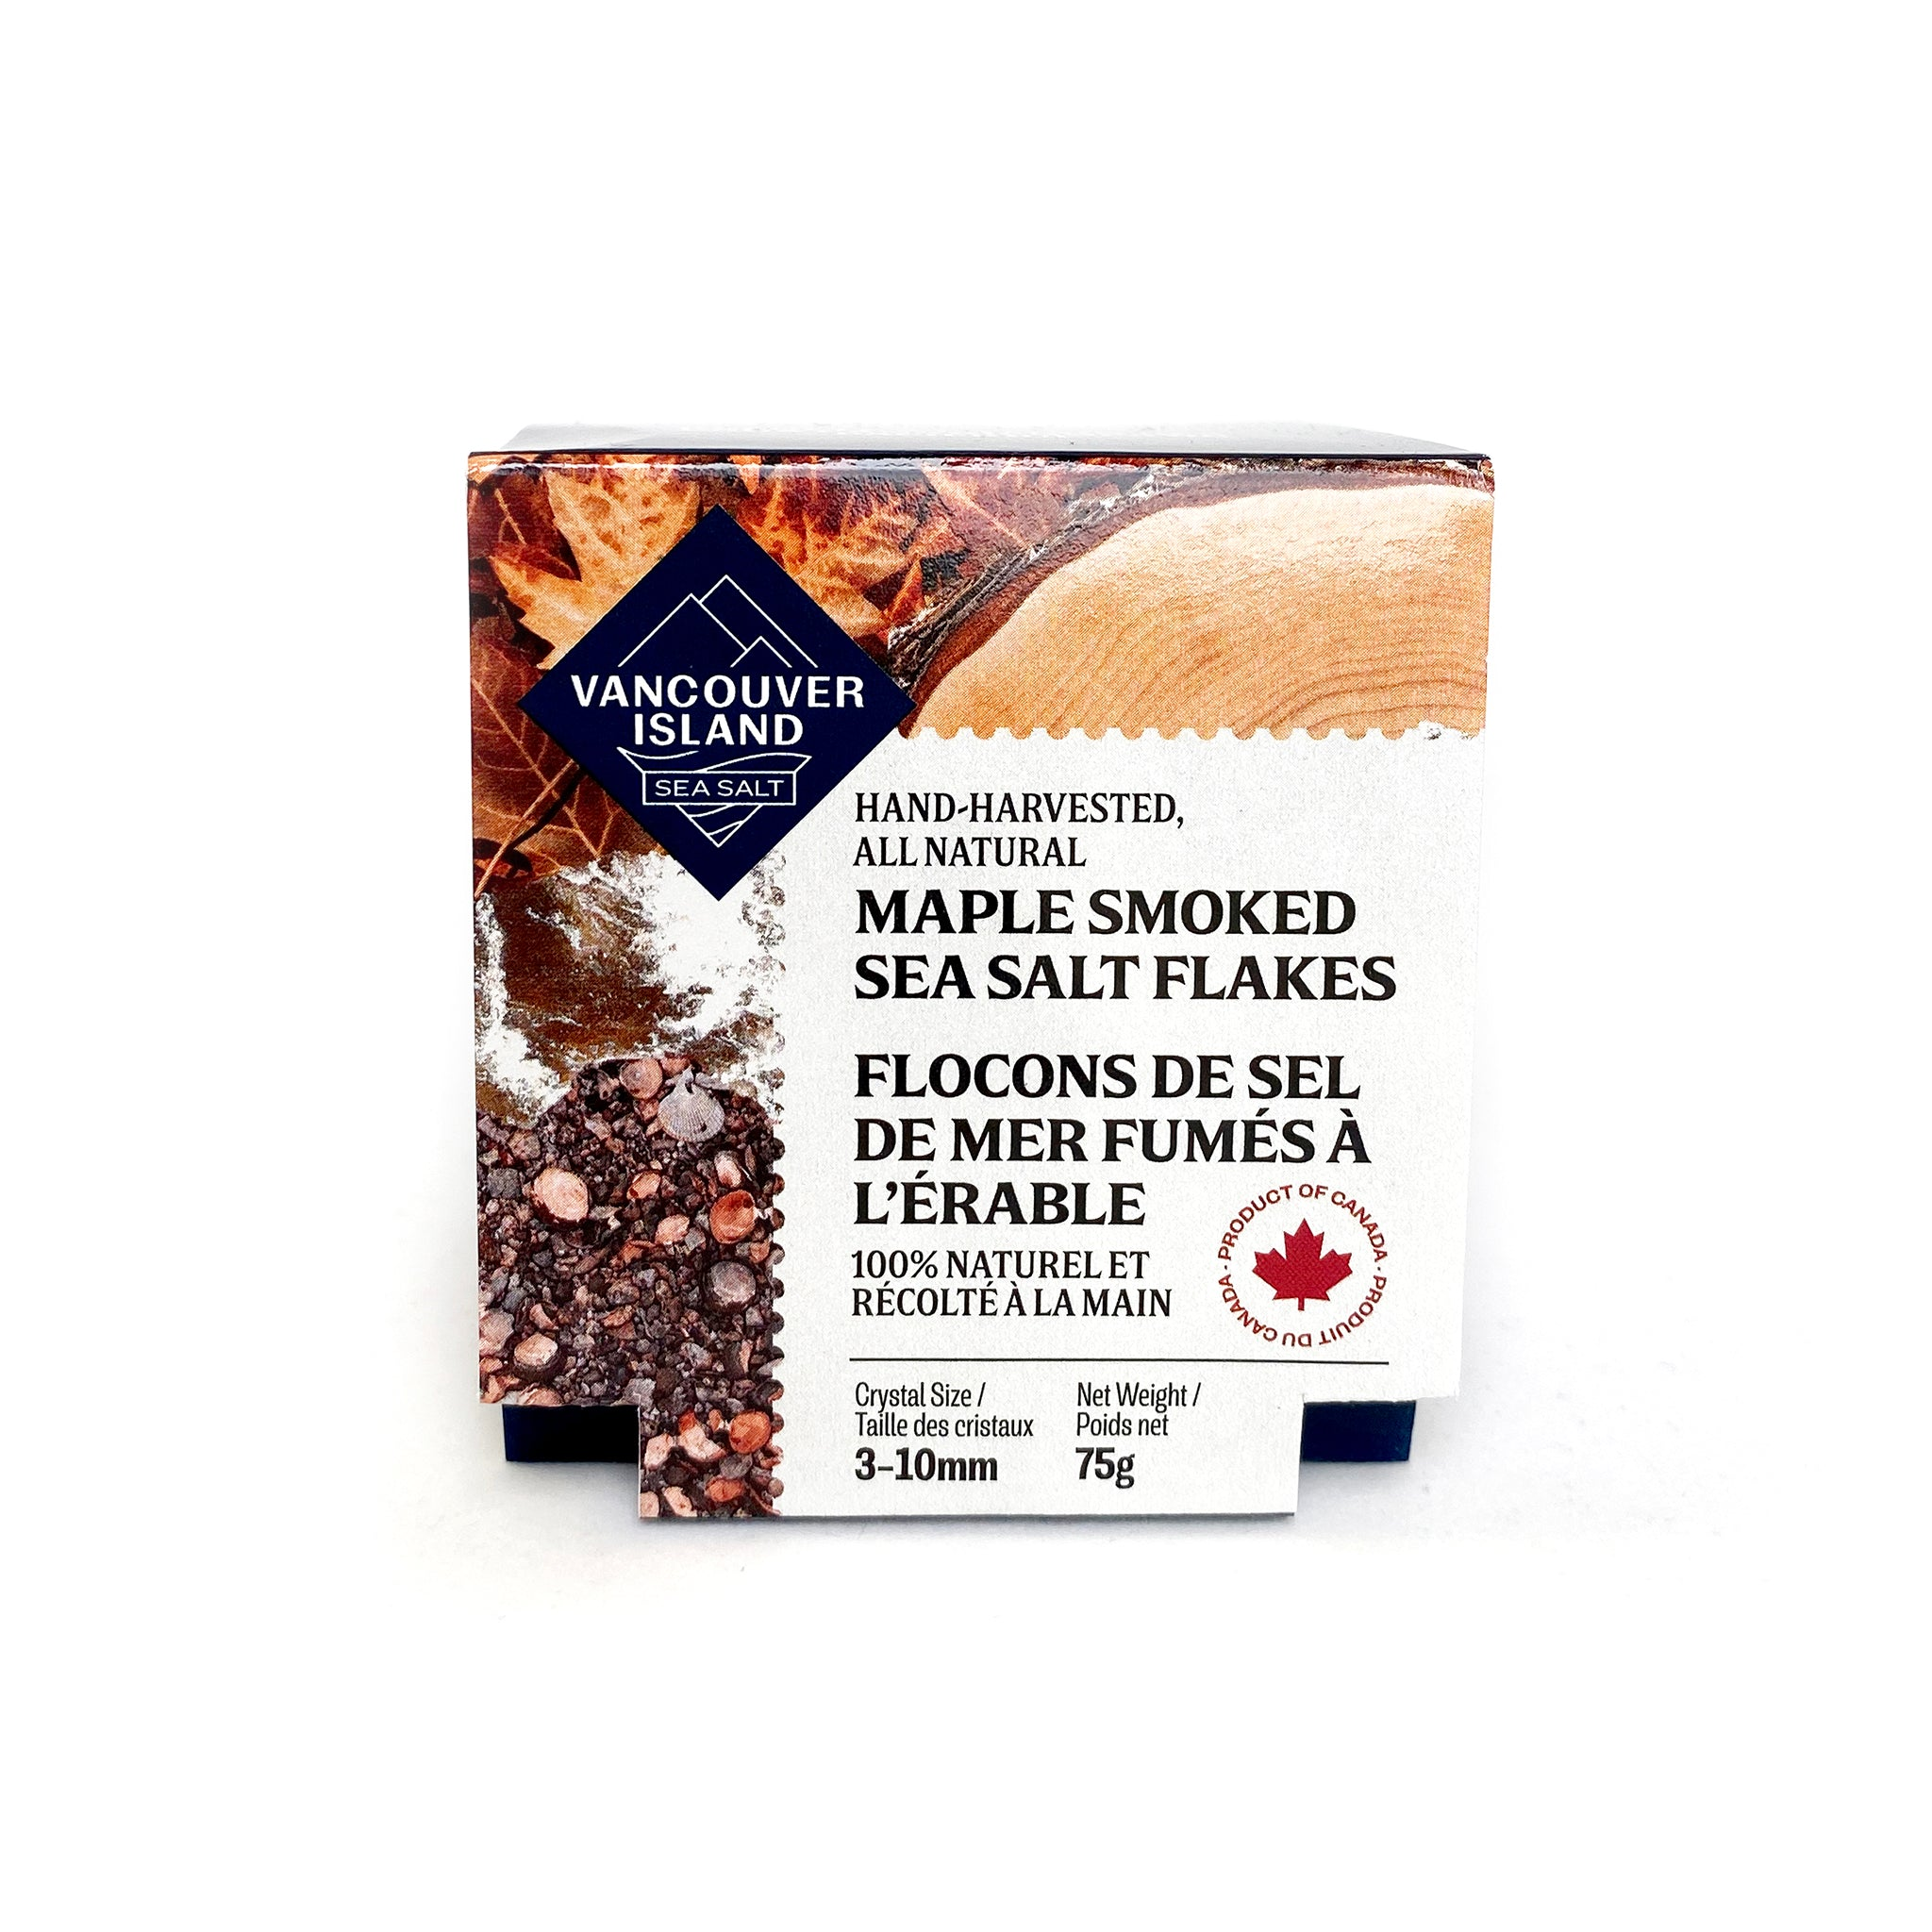 Vancouver Island Salt Co. Hand-harvested, all natural Maple Smoked Sea Salt Flakes.